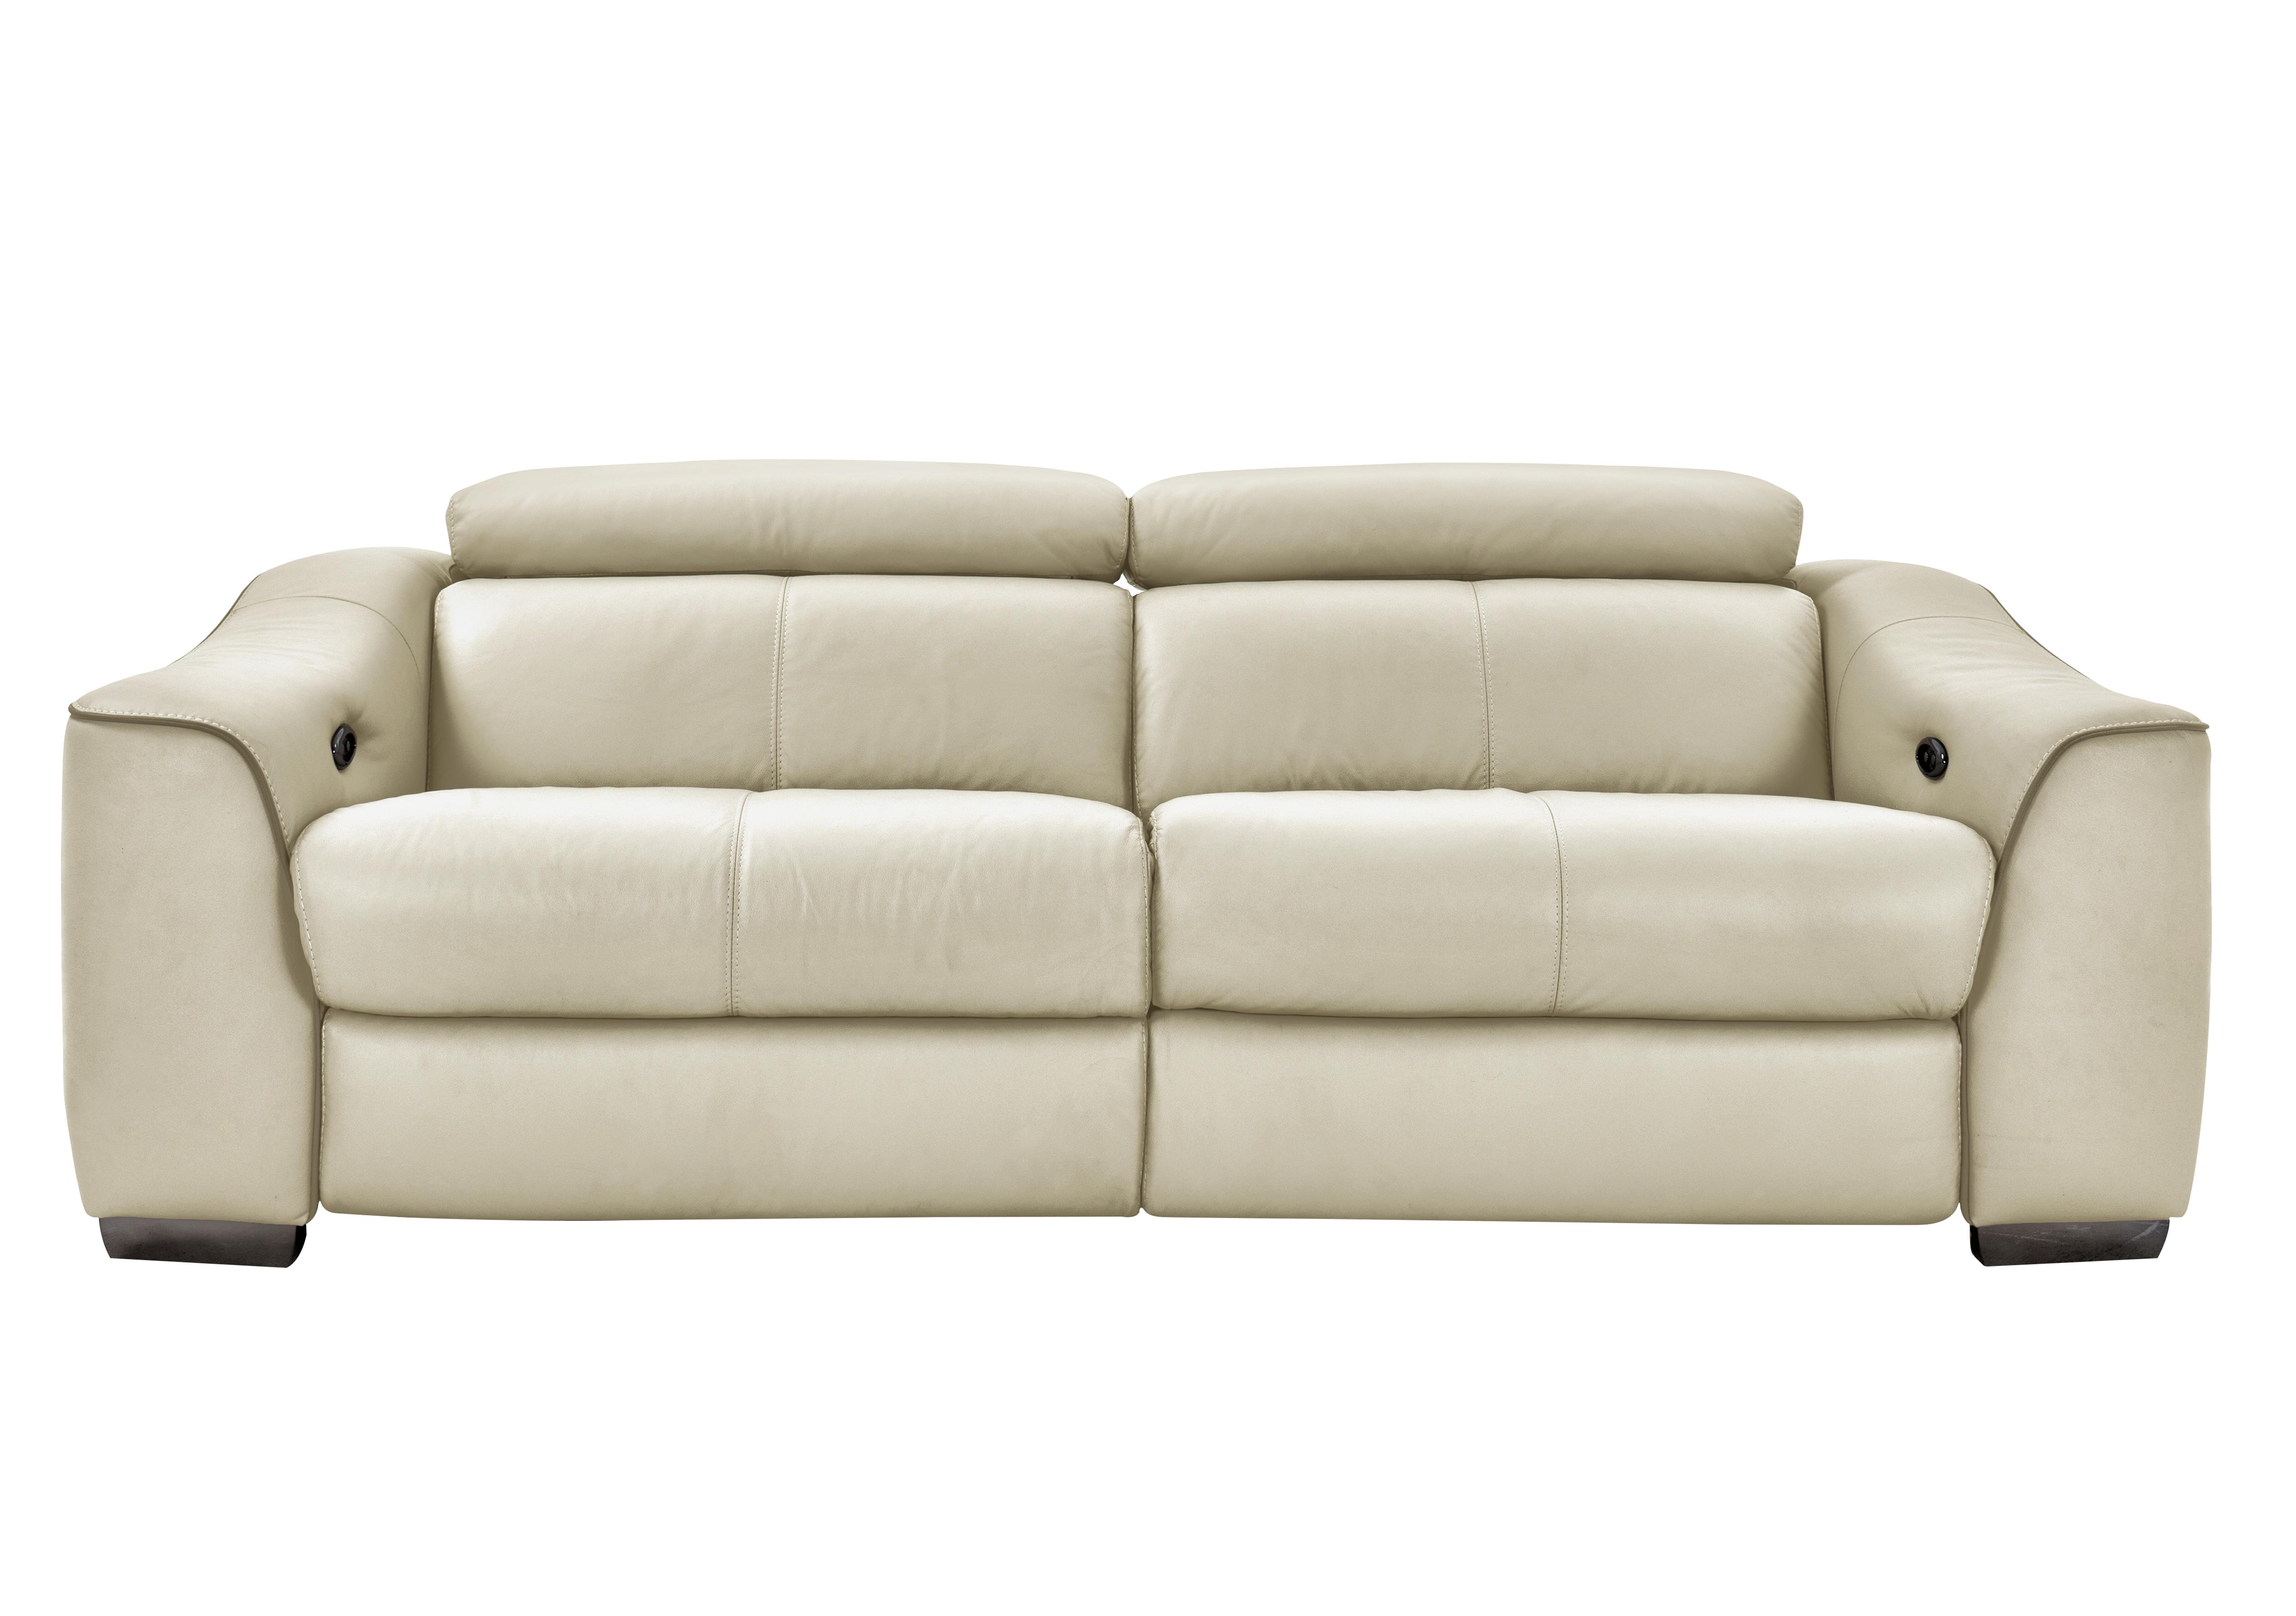 World Of Leather Elixir 3 Seater Leather Recliner Sofa